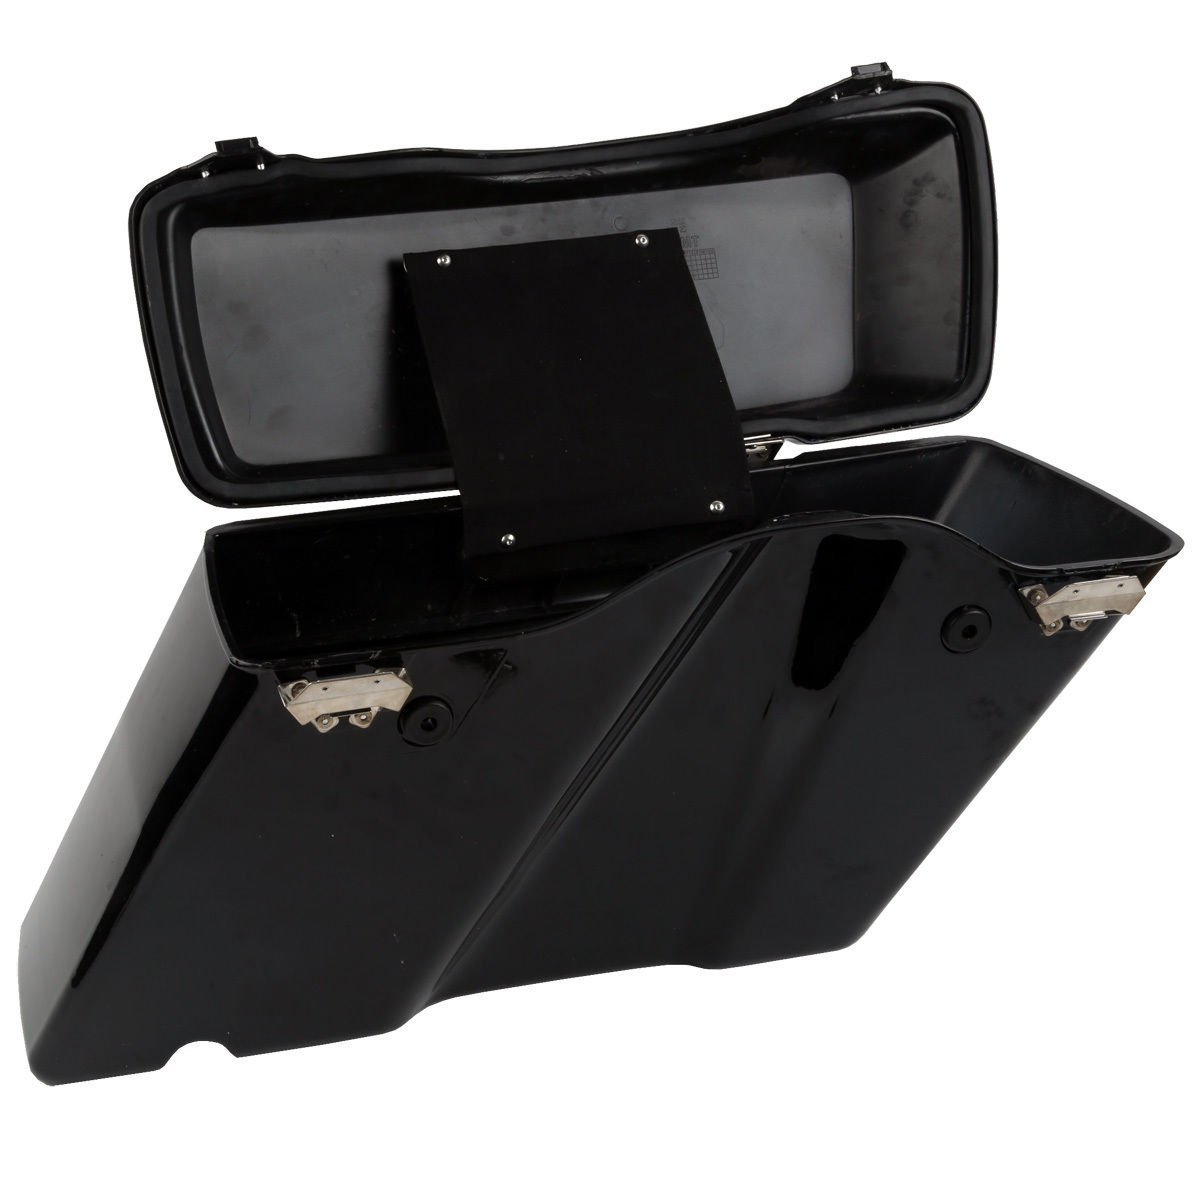 XFMT Gloss Black Hard Saddle bags Trunk w/Lid Latch & Key+Saddlebag Conversion Brackets Mounts Compatible with Harley Davidson Softail 1994-2013 by XFMT (Image #4)